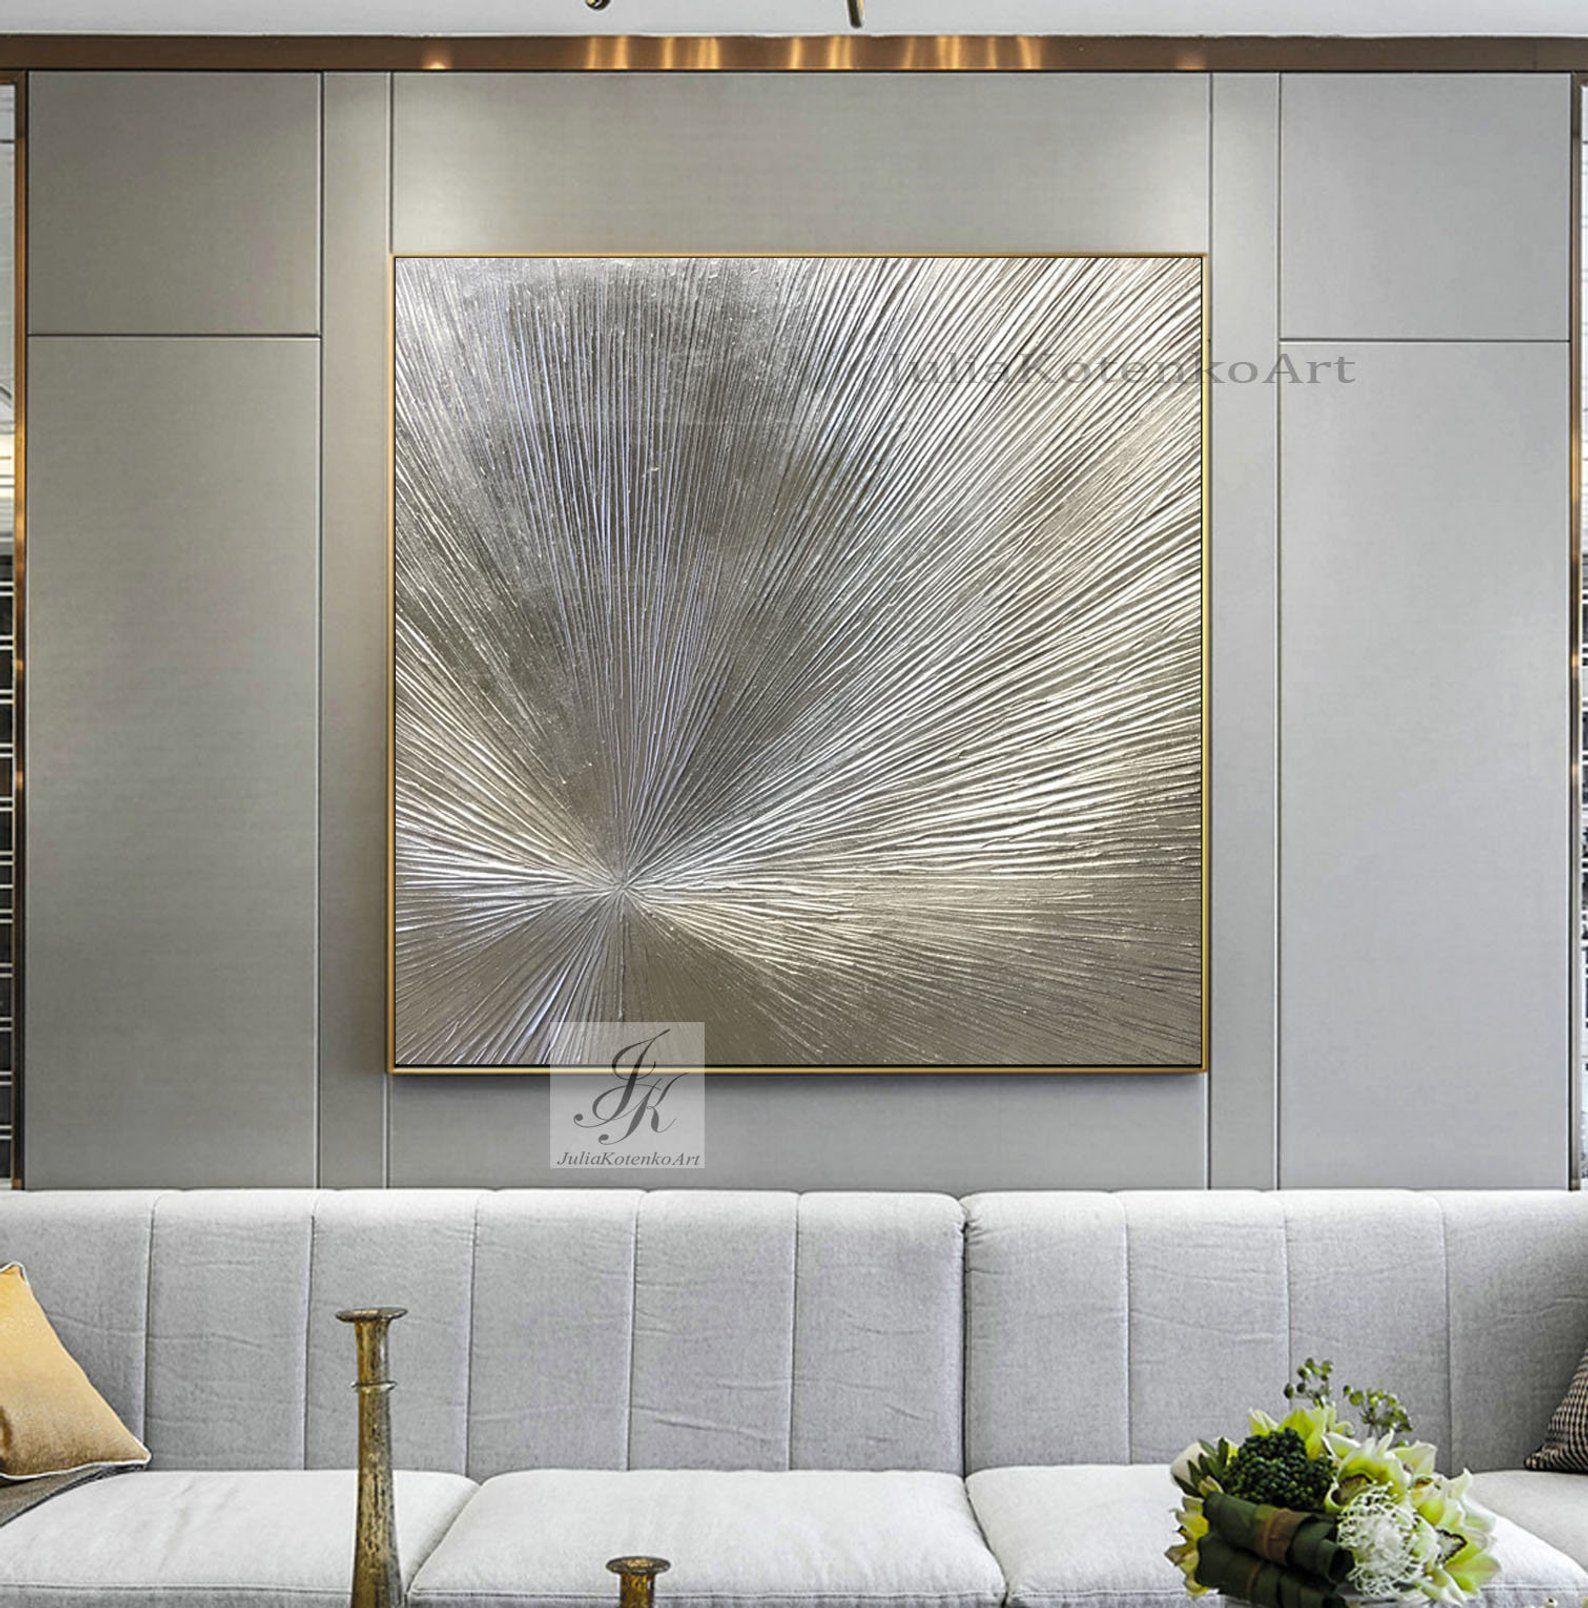 Oversize Silver Painting On Canvas Texture Wall Art Silver Etsy Textured Wall Art Large Wall Art Silver Wall Decor